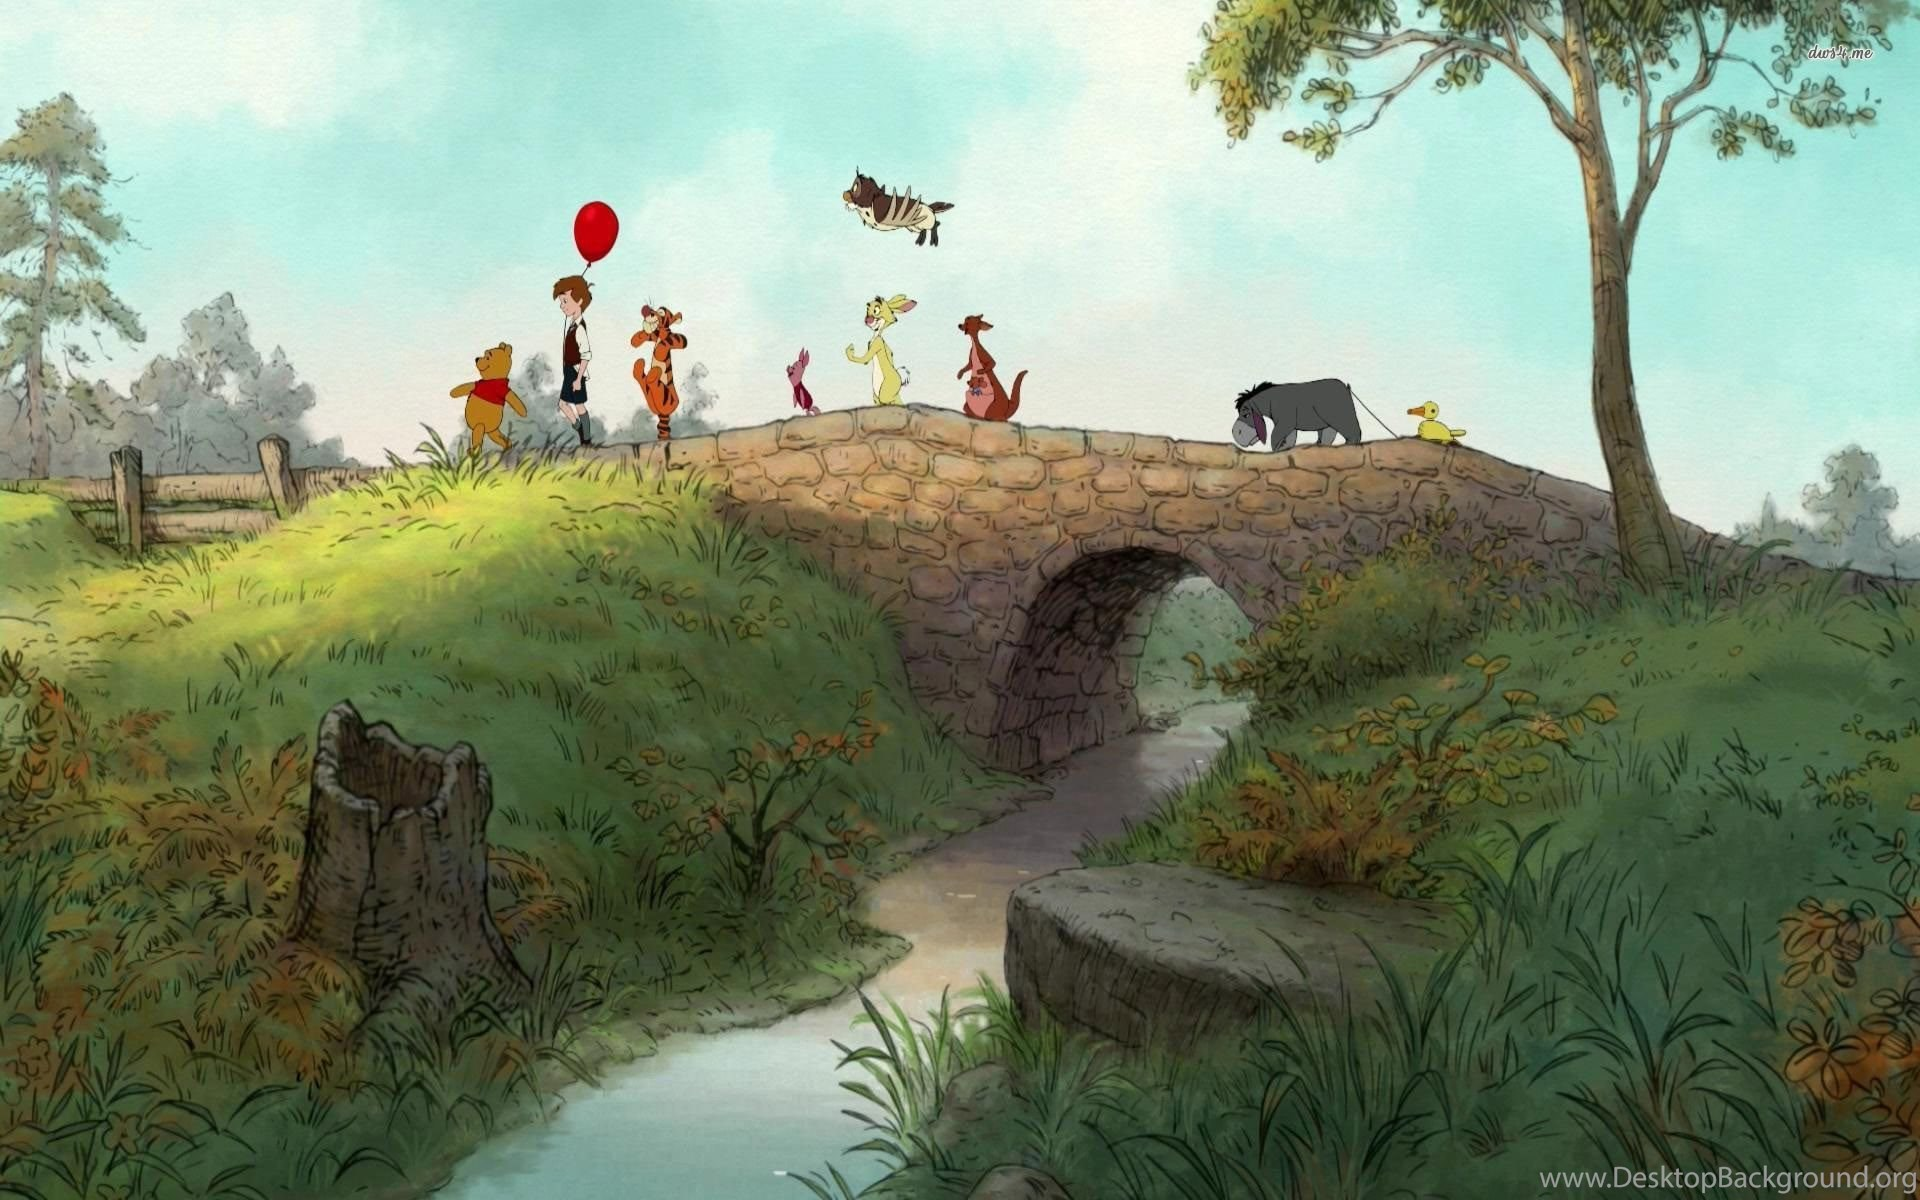 Winnie The Pooh Wallpapers Cartoon Wallpapers Desktop Background